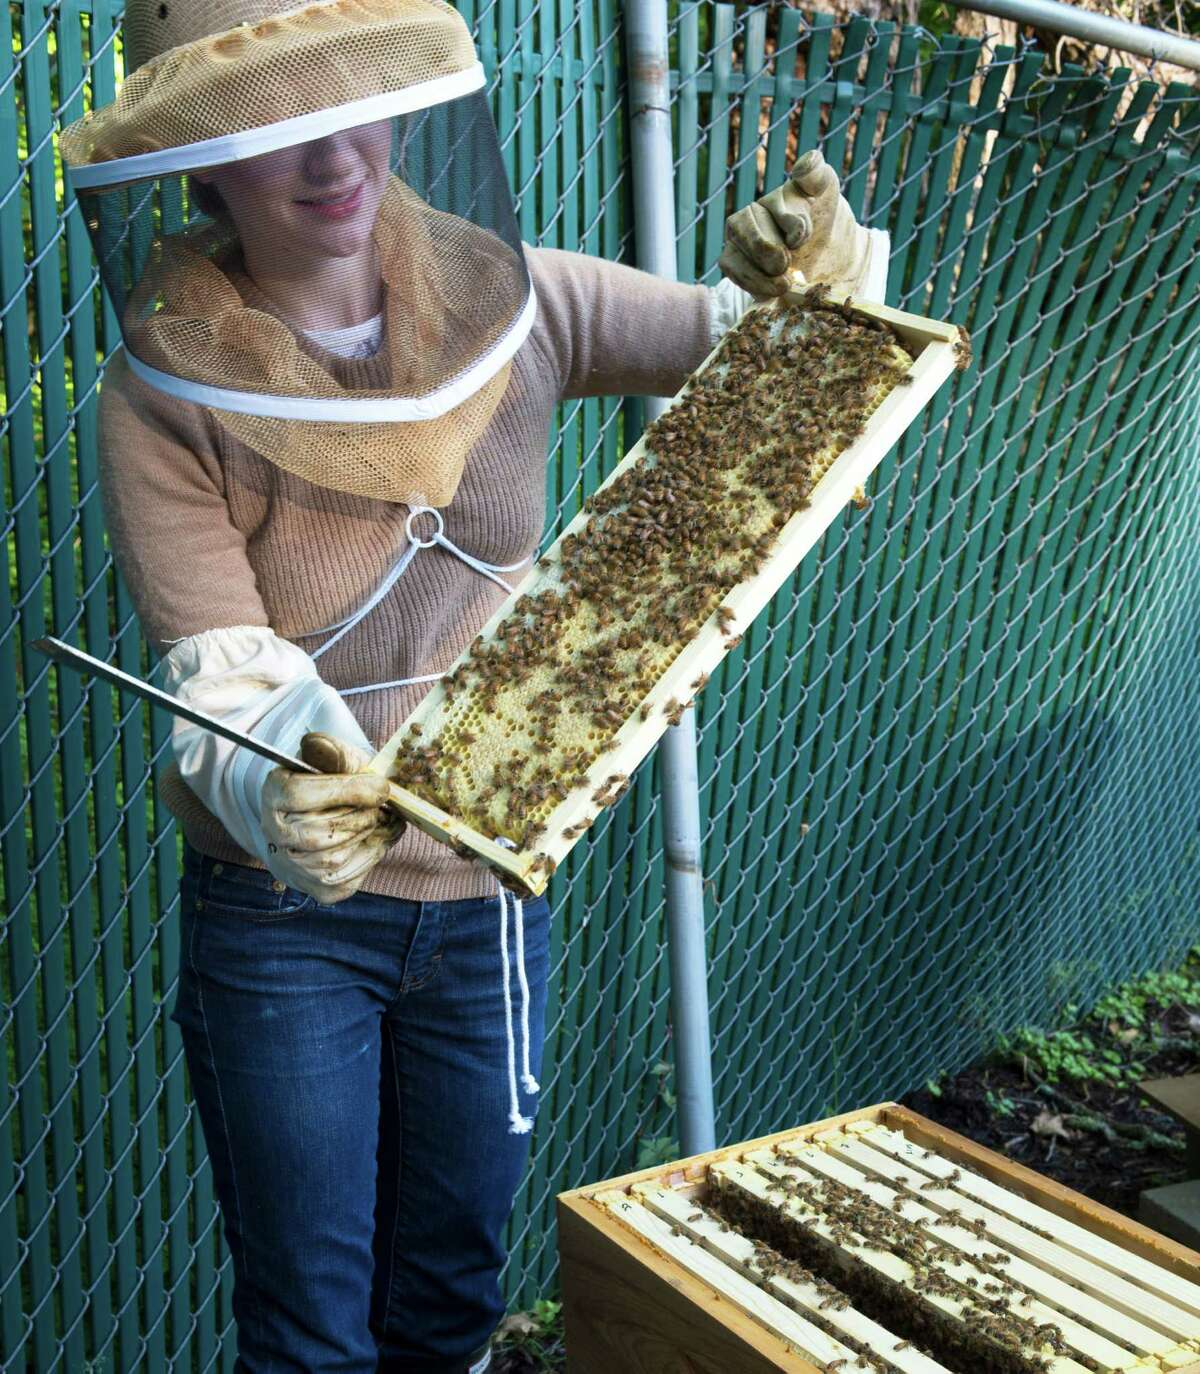 Honey provided colonial families with medicine, sweetner, preservative and beeswax. To illustrate the importance of bee keeping in colonial times, the Ogden House gardens support beehives, here being examined by beekeeper Tess Brown.